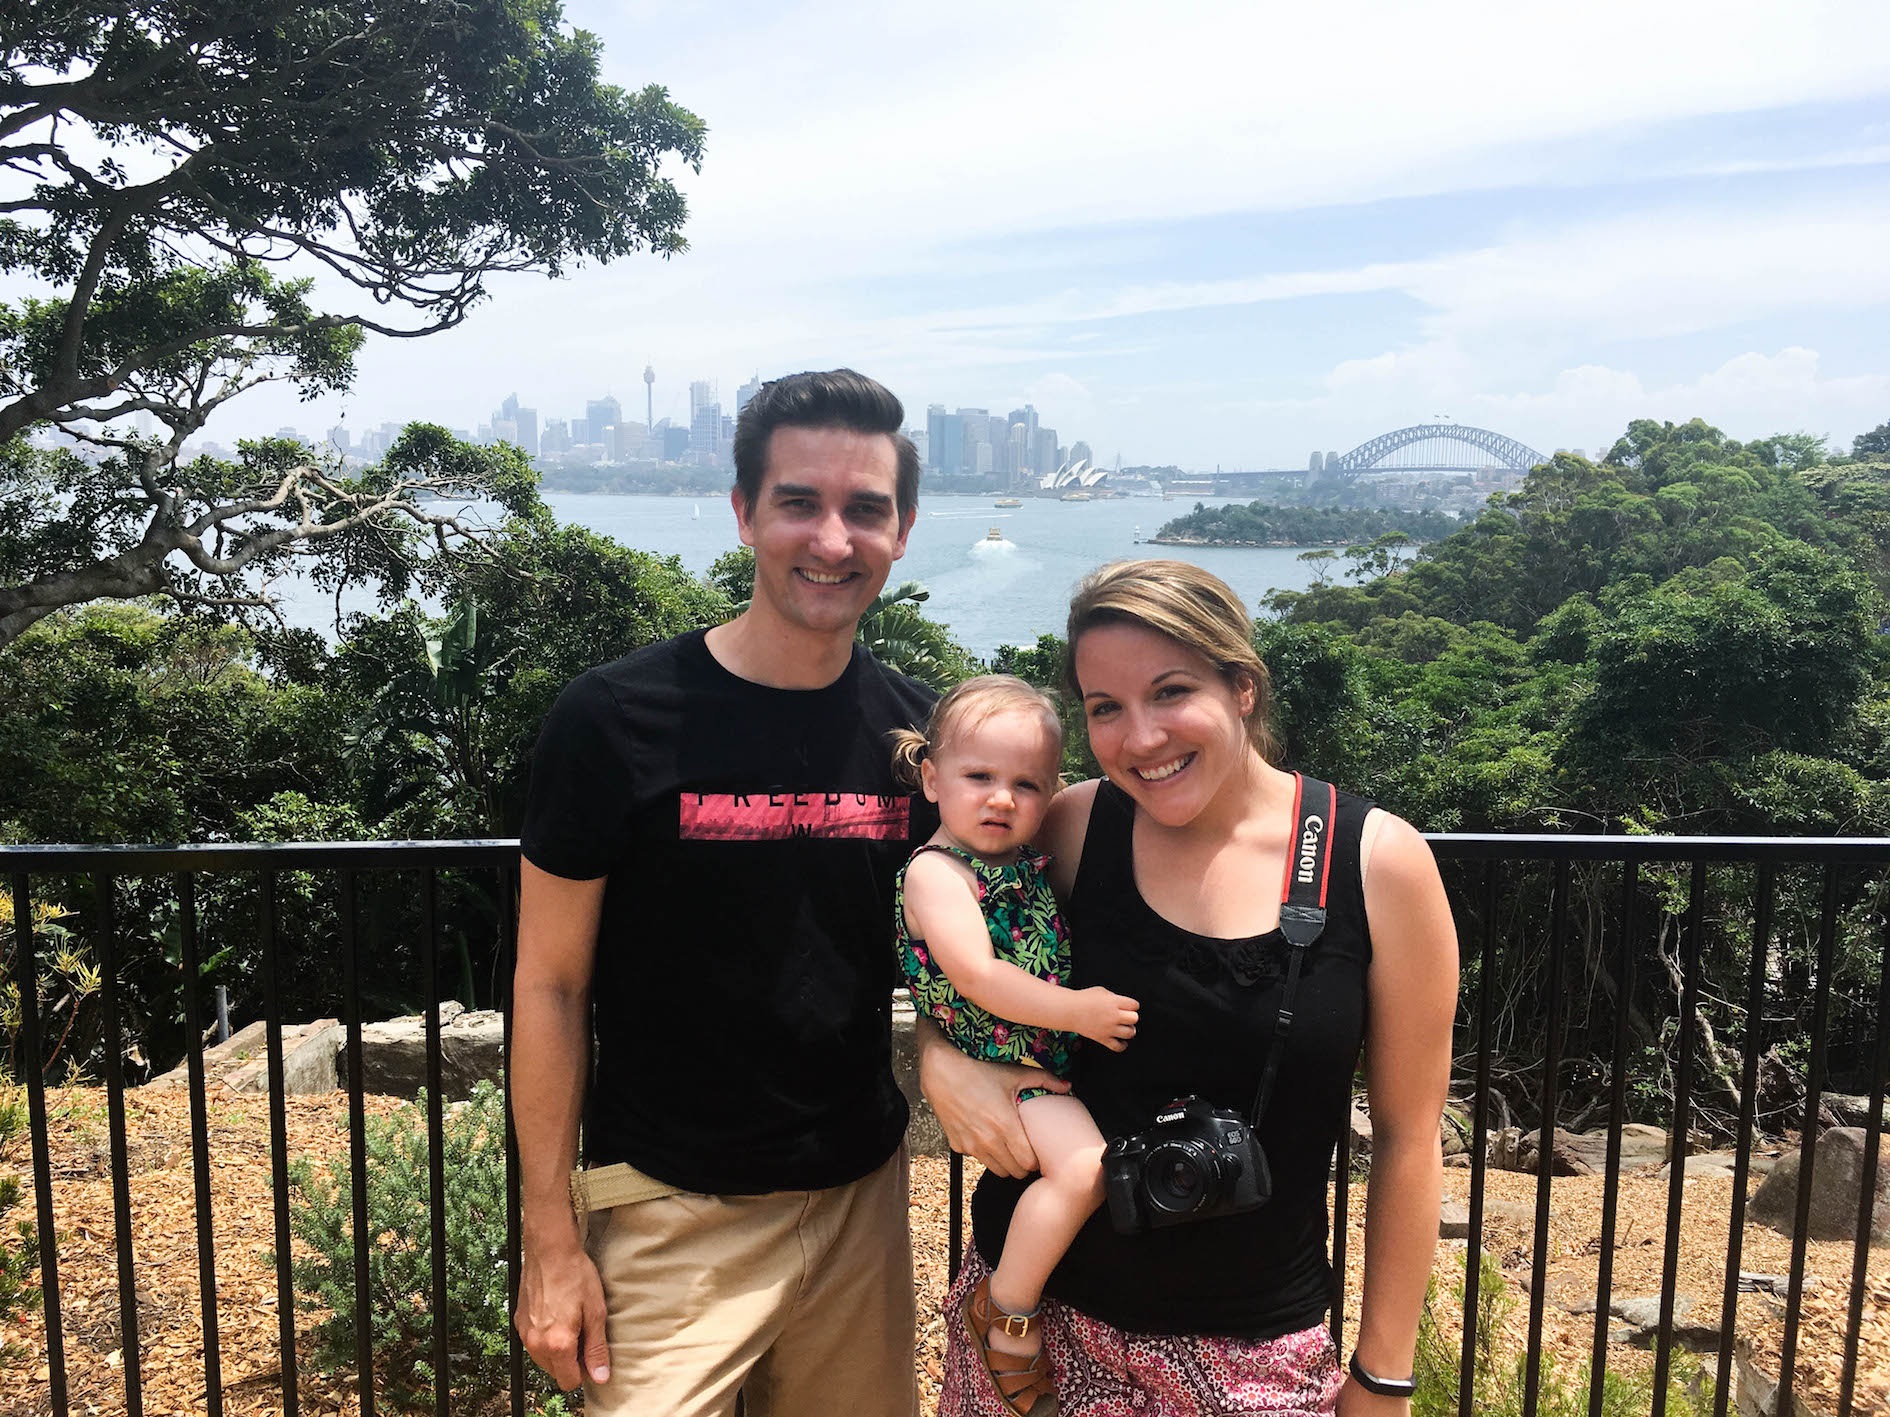 Visiting the Taronga Zoo in Sydney, Australia #zoo #sydney #tarongazoo #daytrip #animals